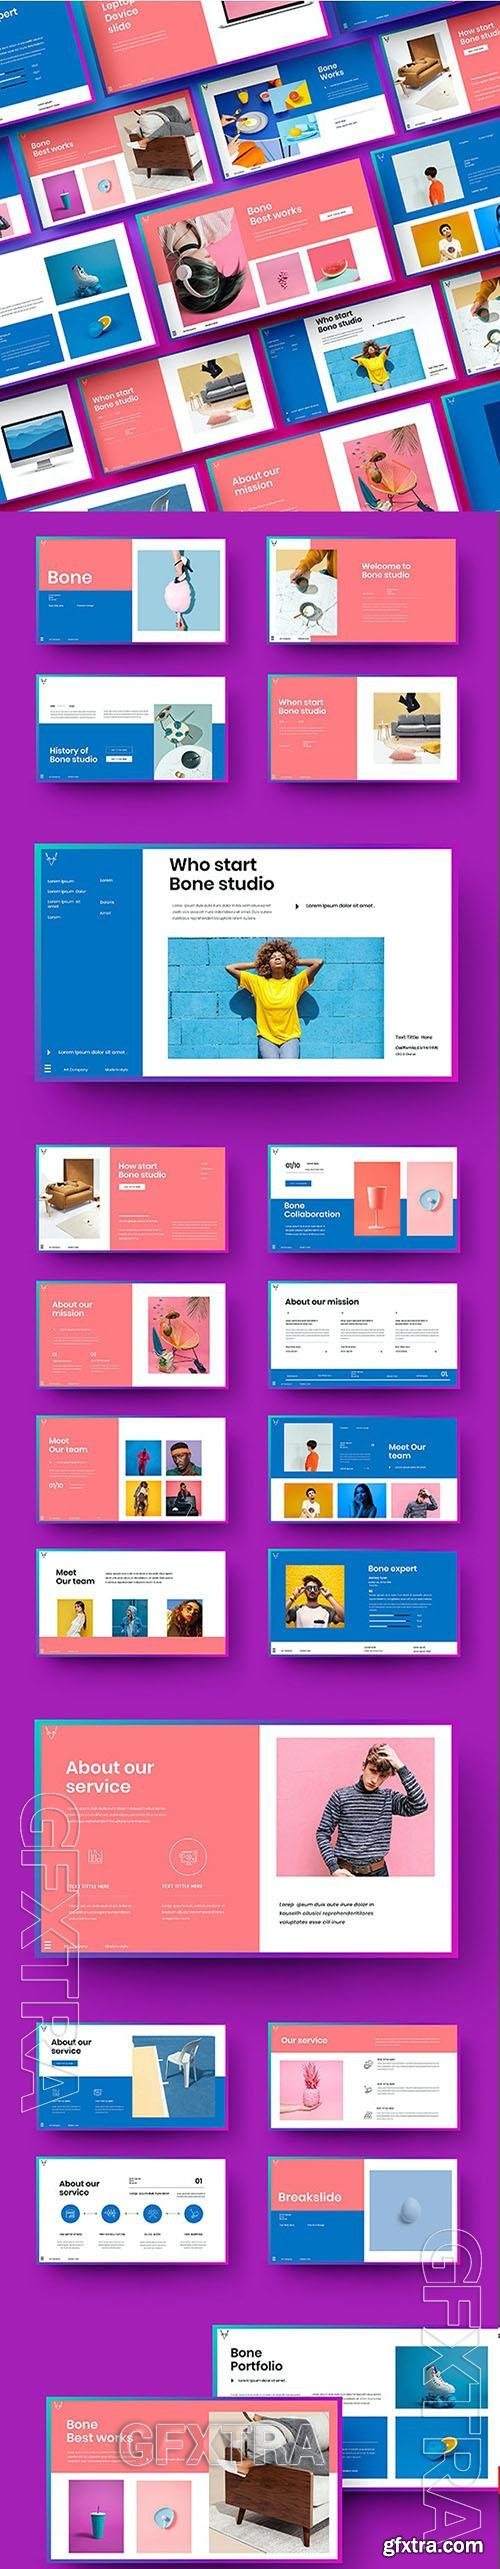 Bone - Business Powerpoint, Keynote and Google Slides Template